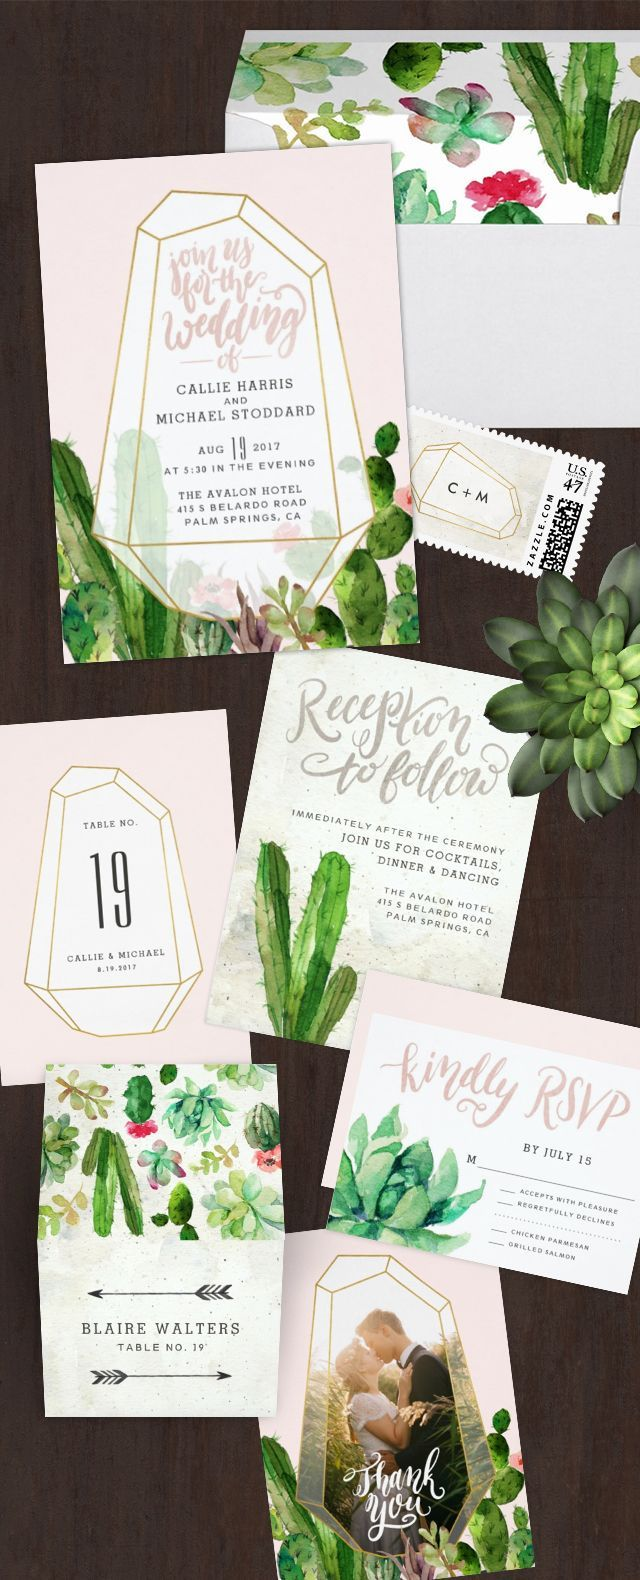 succulent wedding invitations succulent wedding invitations Desert Succulent wedding paper suite perfect for a Palm Springs or desert wedding venue